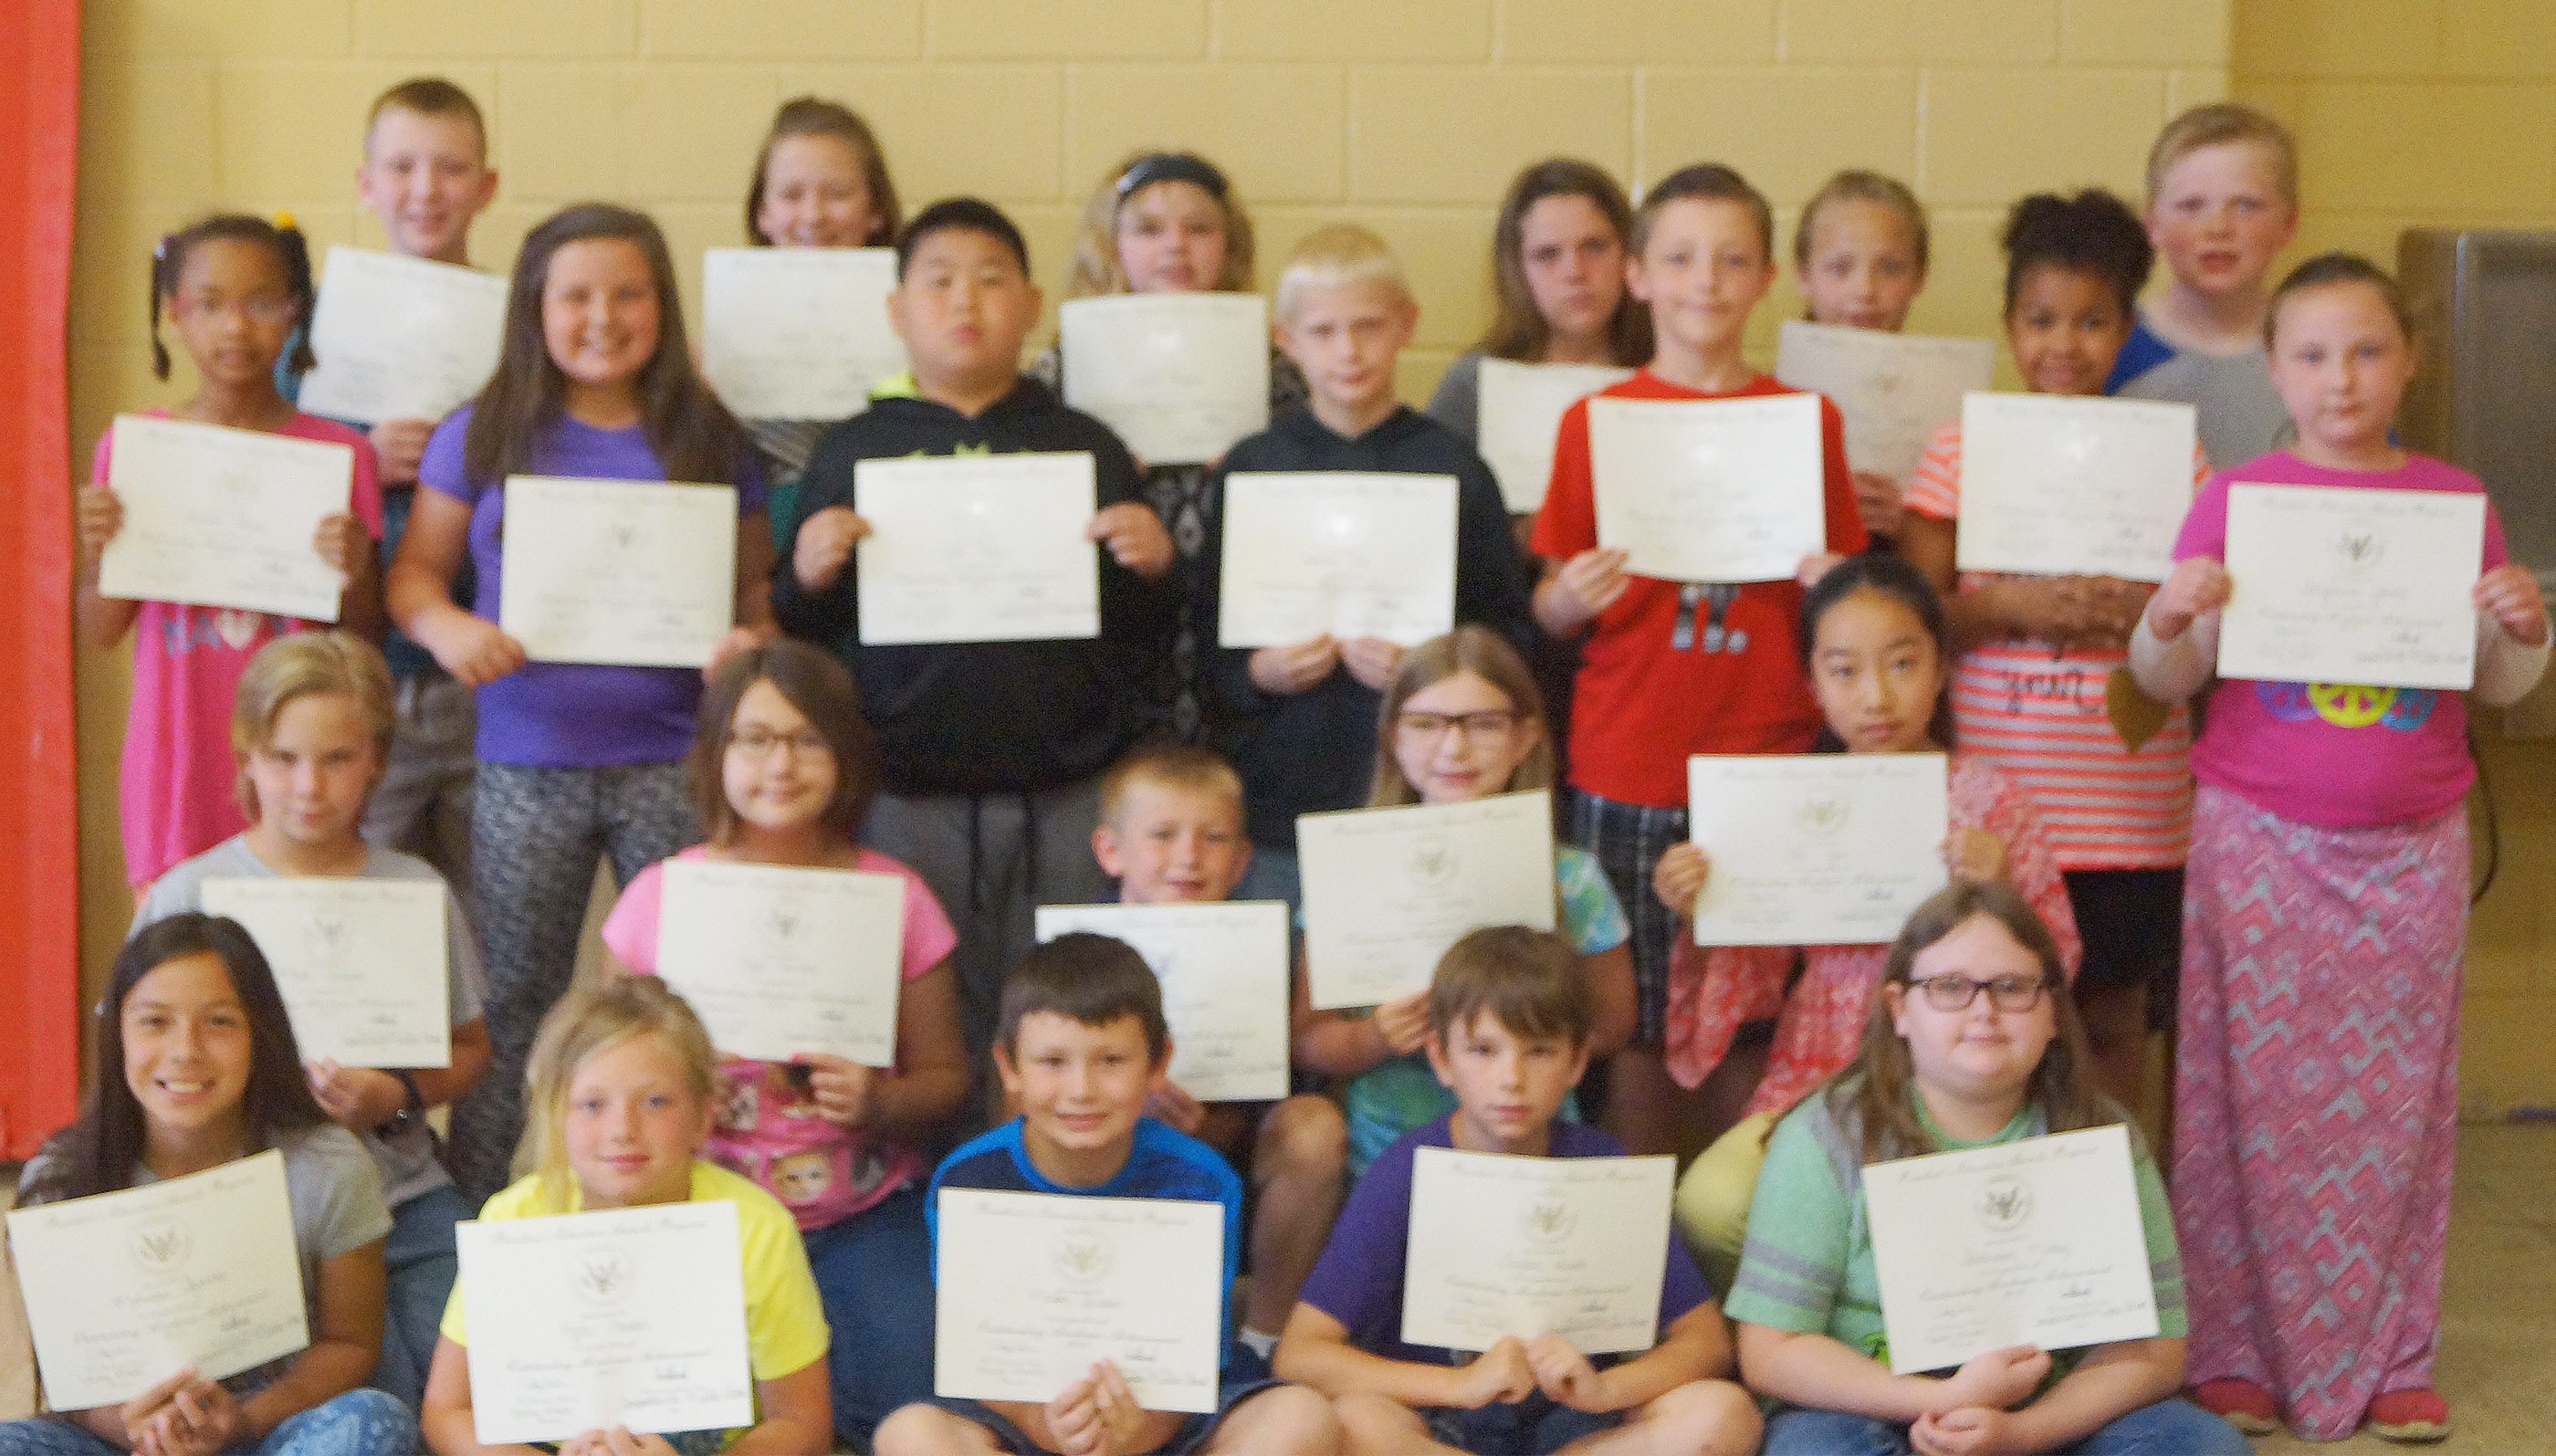 Fourth-graders receiving the president's award for educational achievement are, from left, front, Marissa Segura, Kyra Parker, Mason Fisher, Taylan Hunt and Savannah Milby. Second row, Thomas Tungate, Kylee Sowders, Arthur Singleton, Morgan Spears and Yu Zhi. Third row, Lillian Sears, Kaitlyn Keith, Zhi Chen, Bronson Cox, Jaxon Garrett, Serenity Mings and Shyanna Young. Back, Kaleb Miller, Isabel Dengel, Dakota Broyles, Summer Cothern, Deanna Reardon and Simon Wilkerson. Absent from the photo is Falicity Lewis.